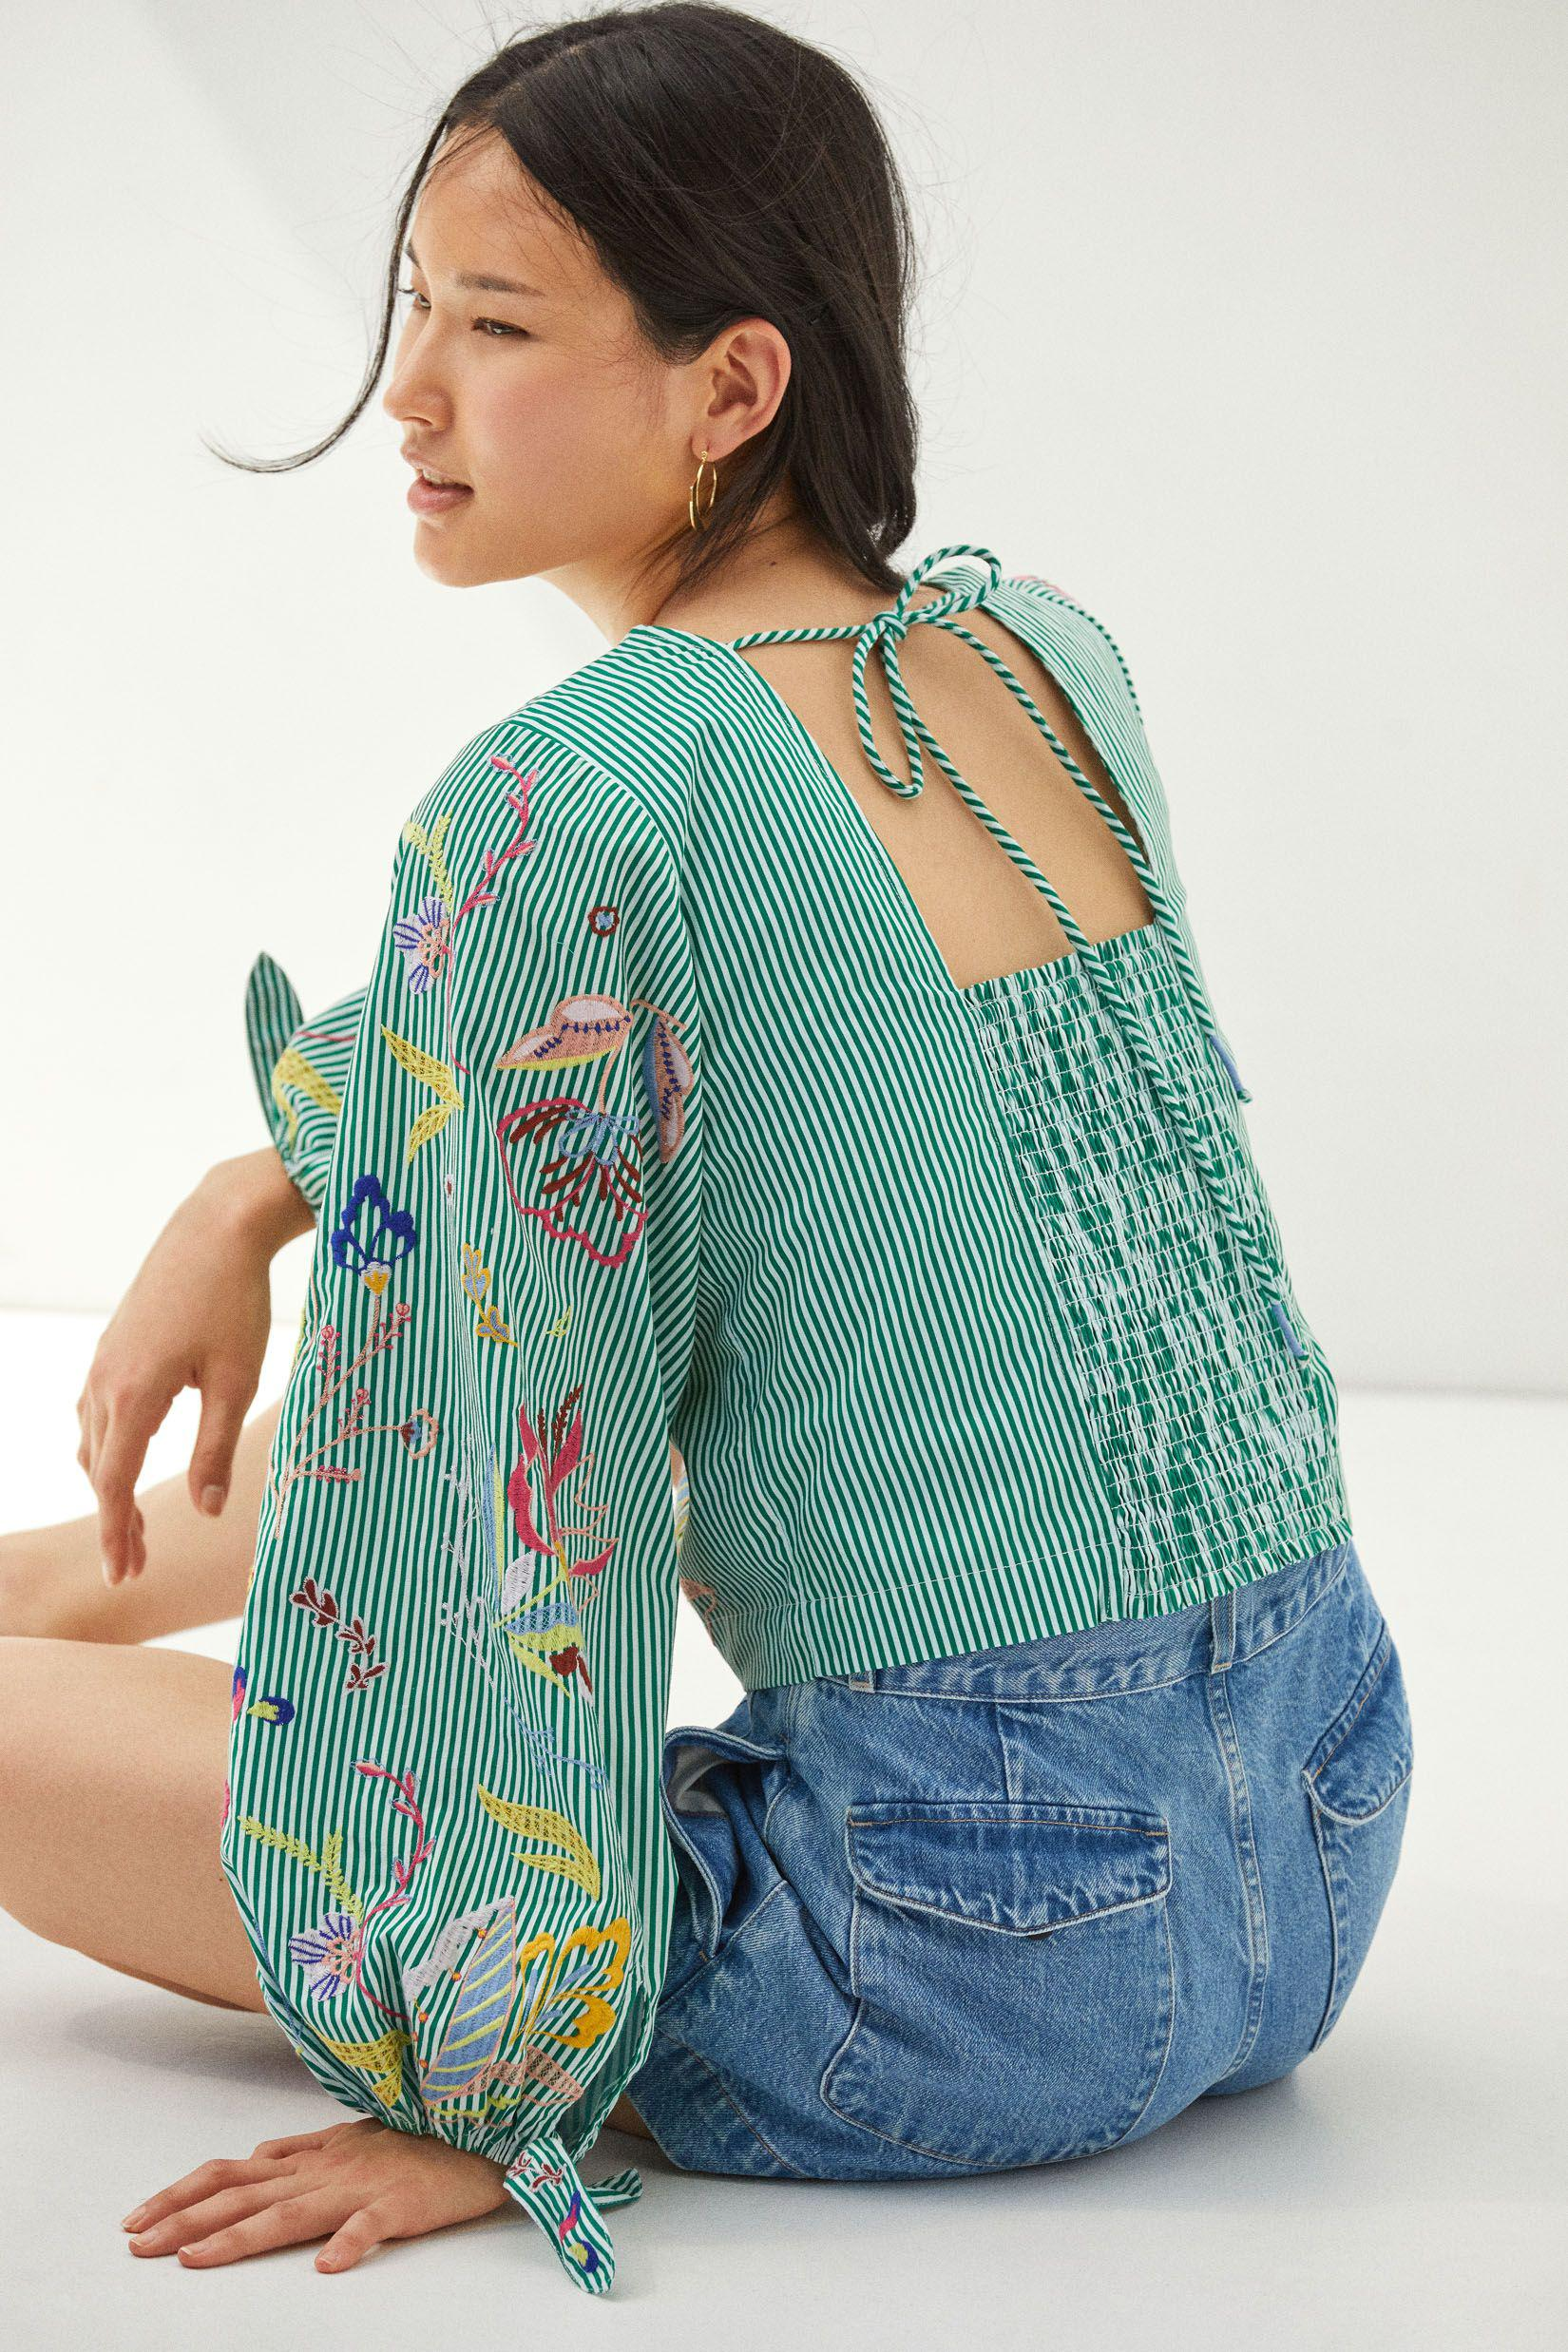 Maeve Embroidered Blouse